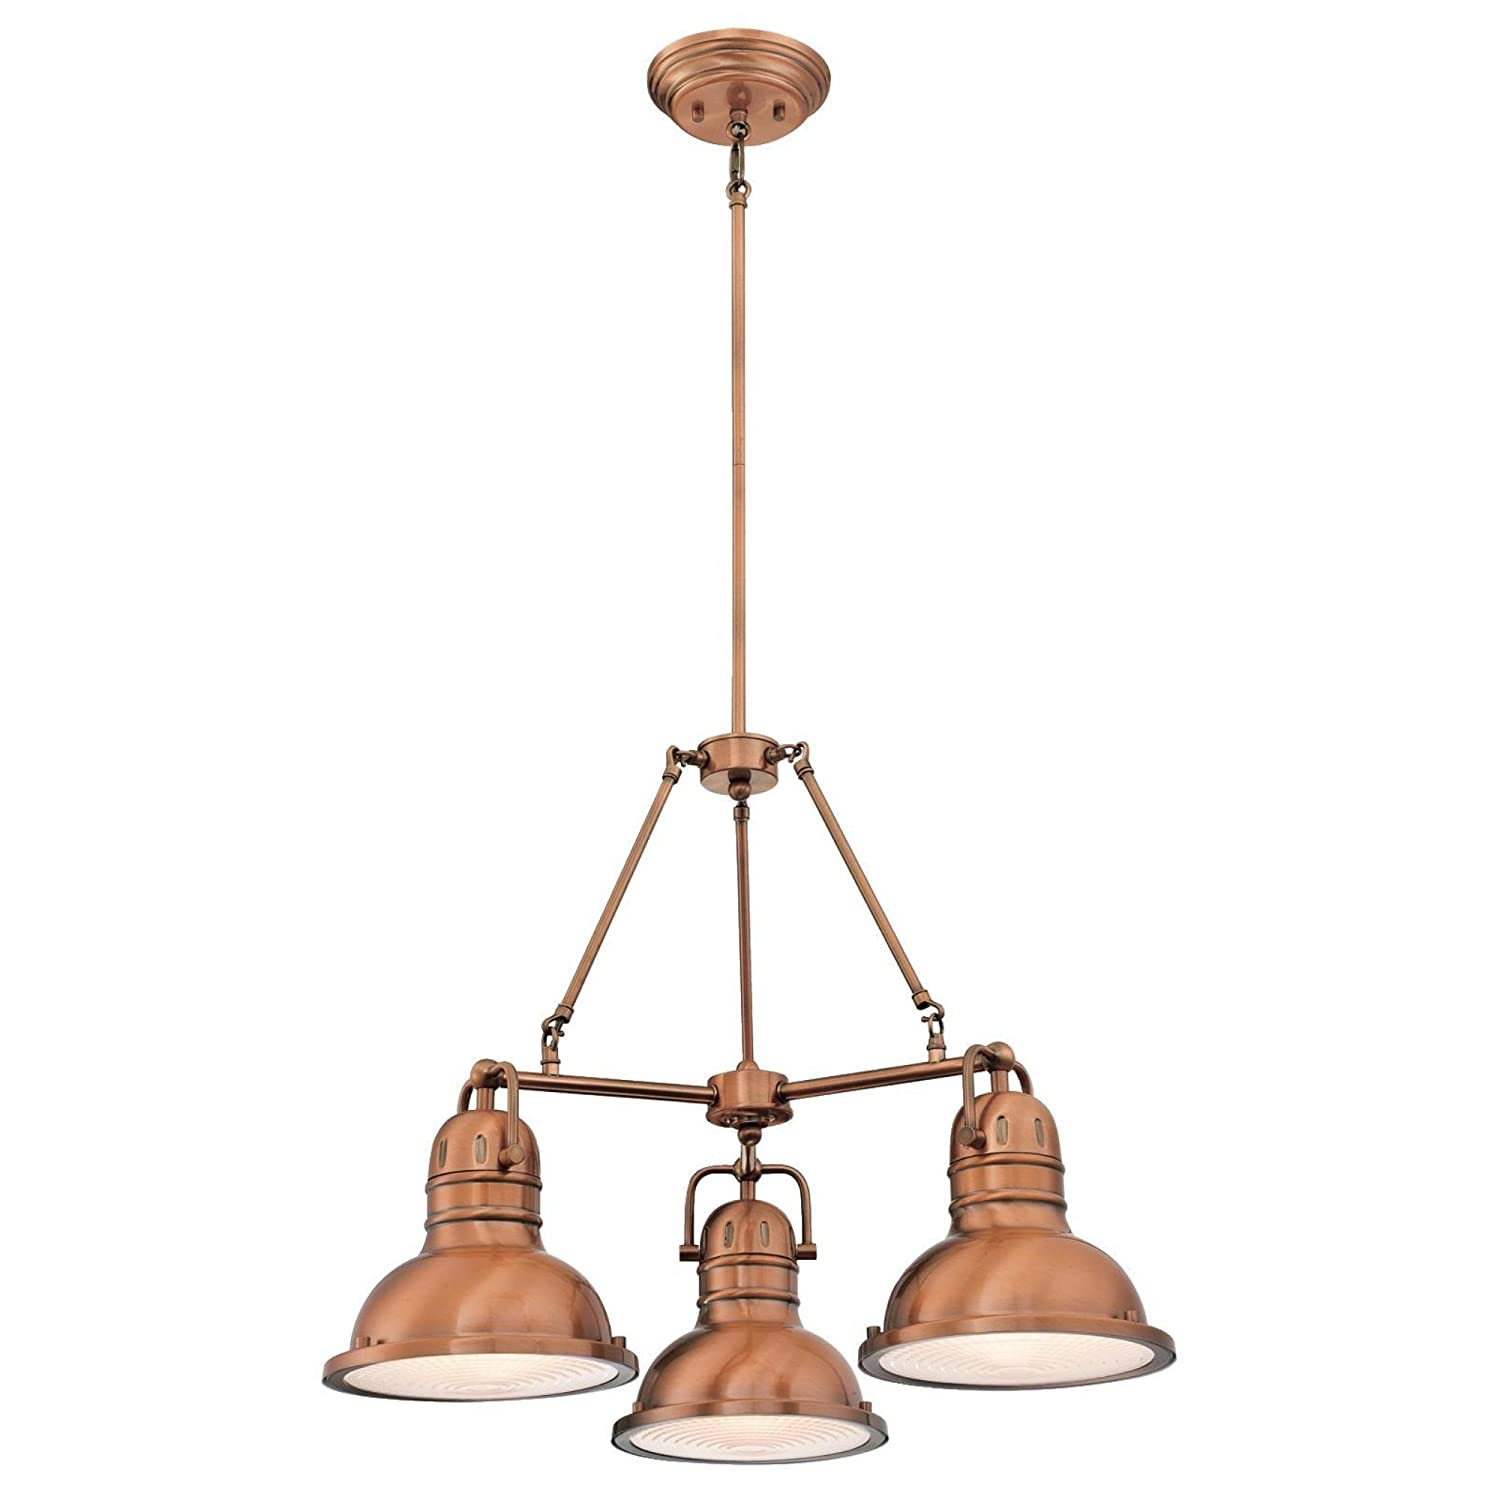 Westinghouse Lighting 6333800 Boswell Three-Light Indoor Chandelier, Washed Copper Finish with Prismatic Lens